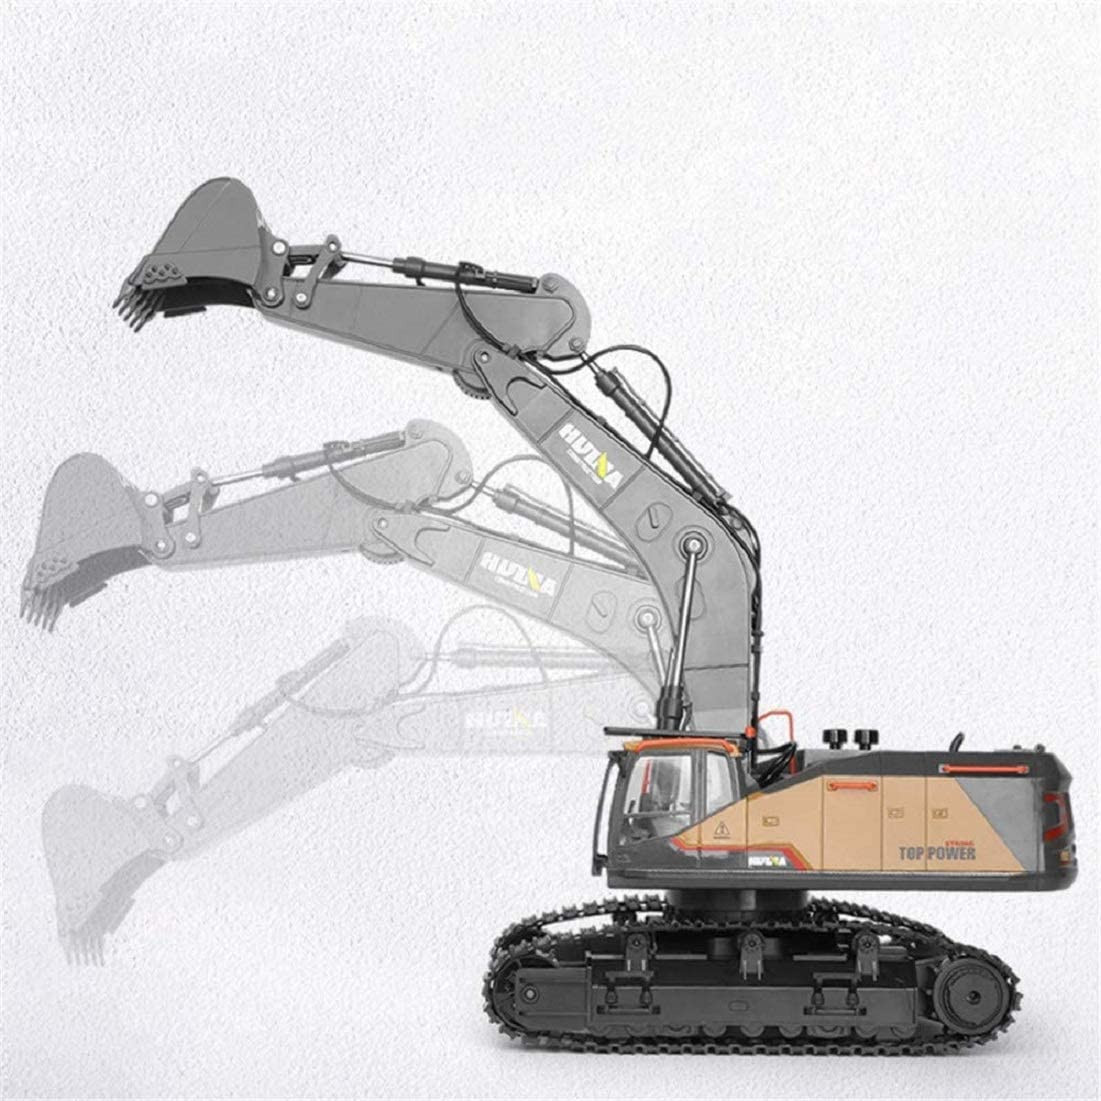 Fully Functional 1:14 Scale 22 Channels Huina 592 Remote Control Excavator Rechargeable RC Toy Truck Construction Vehicle with Metal Bucket and LED Lights and Simulating Sounds